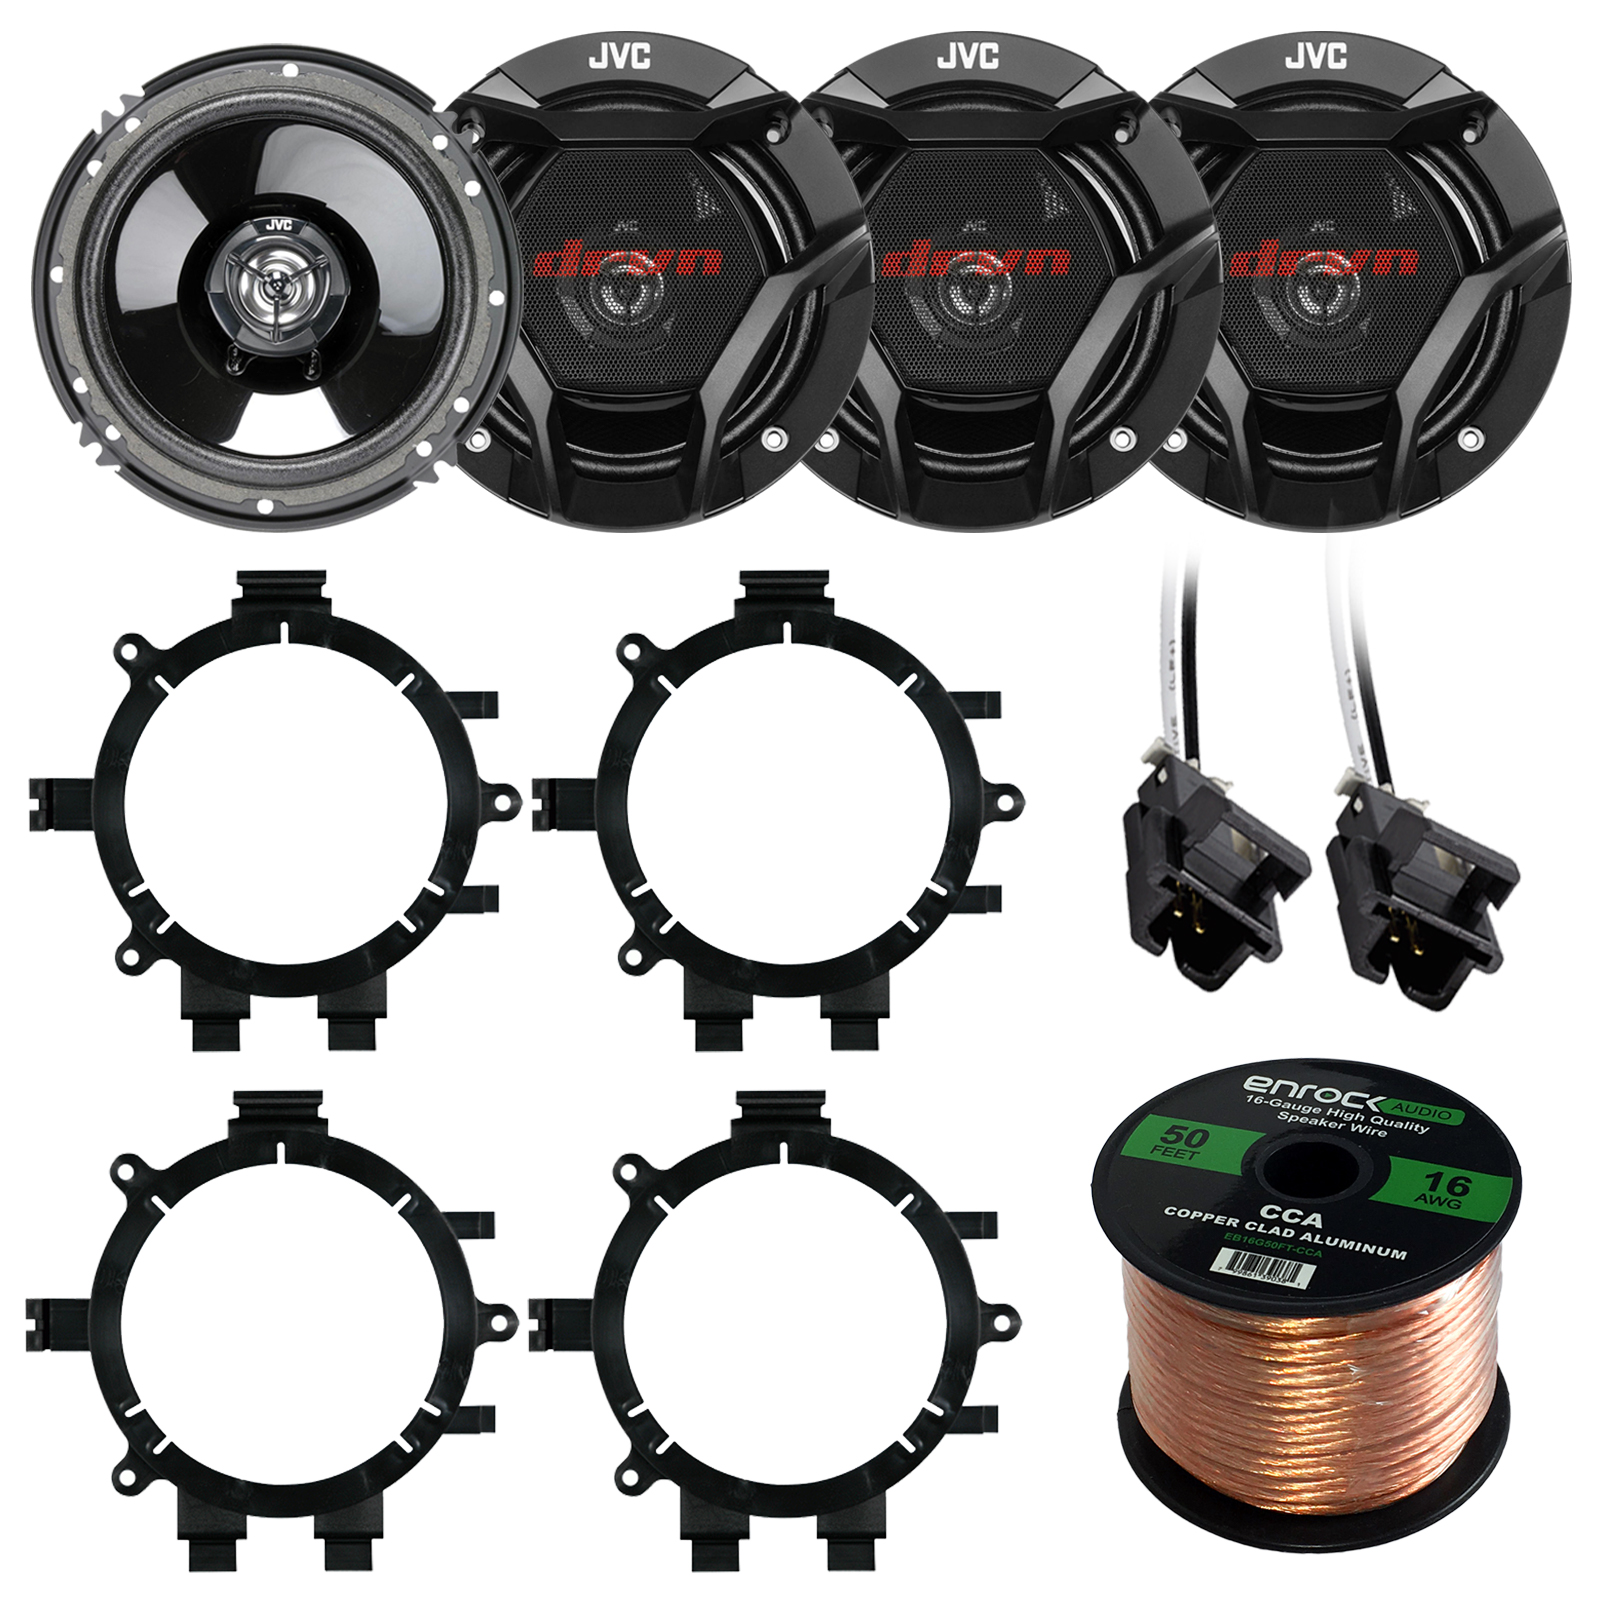 "Car Speaker Package Of 4X JVC CS-DR620 6.5"" Inch 300 Watt 2-Way Audio Stereo Coaxial Speakers Bundle Combo With Full Size Speaker Adaptors And Wiring Harness + 50Ft Wire For 1995-2009 GM Vehicles"